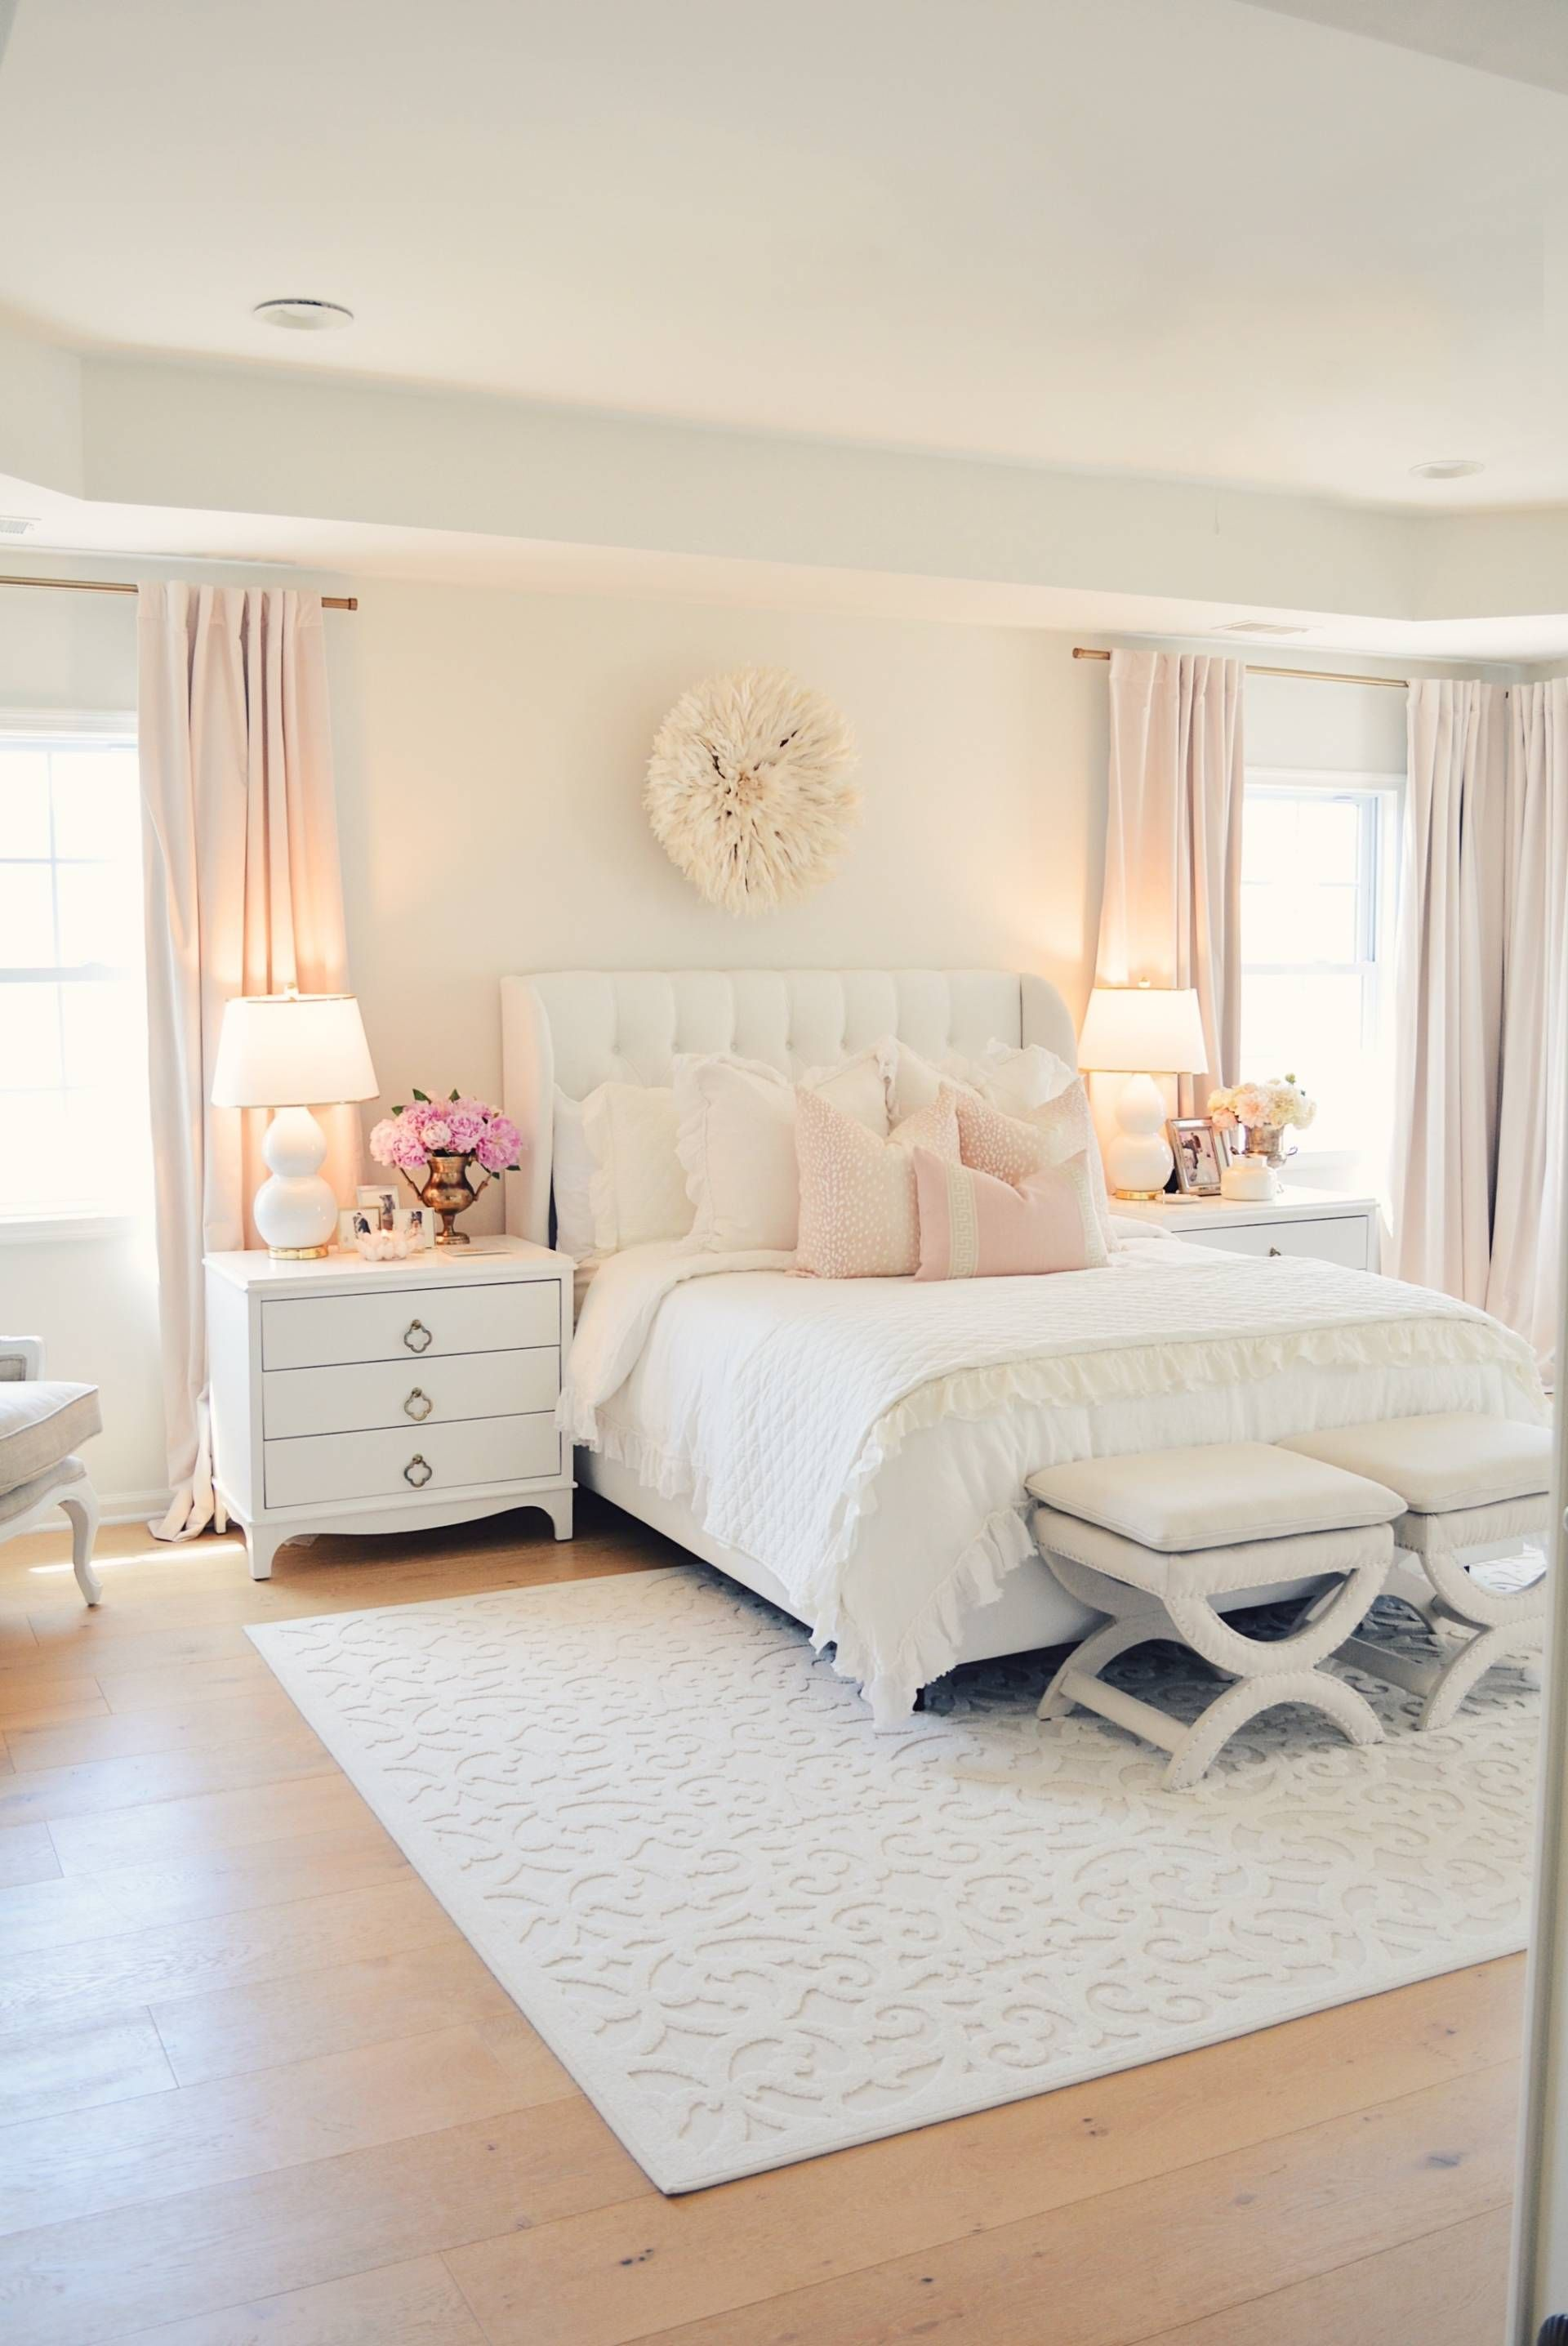 Elegant White Master Bedroom & Blush Decorative Pillows - The Pink Dream #bedrooms